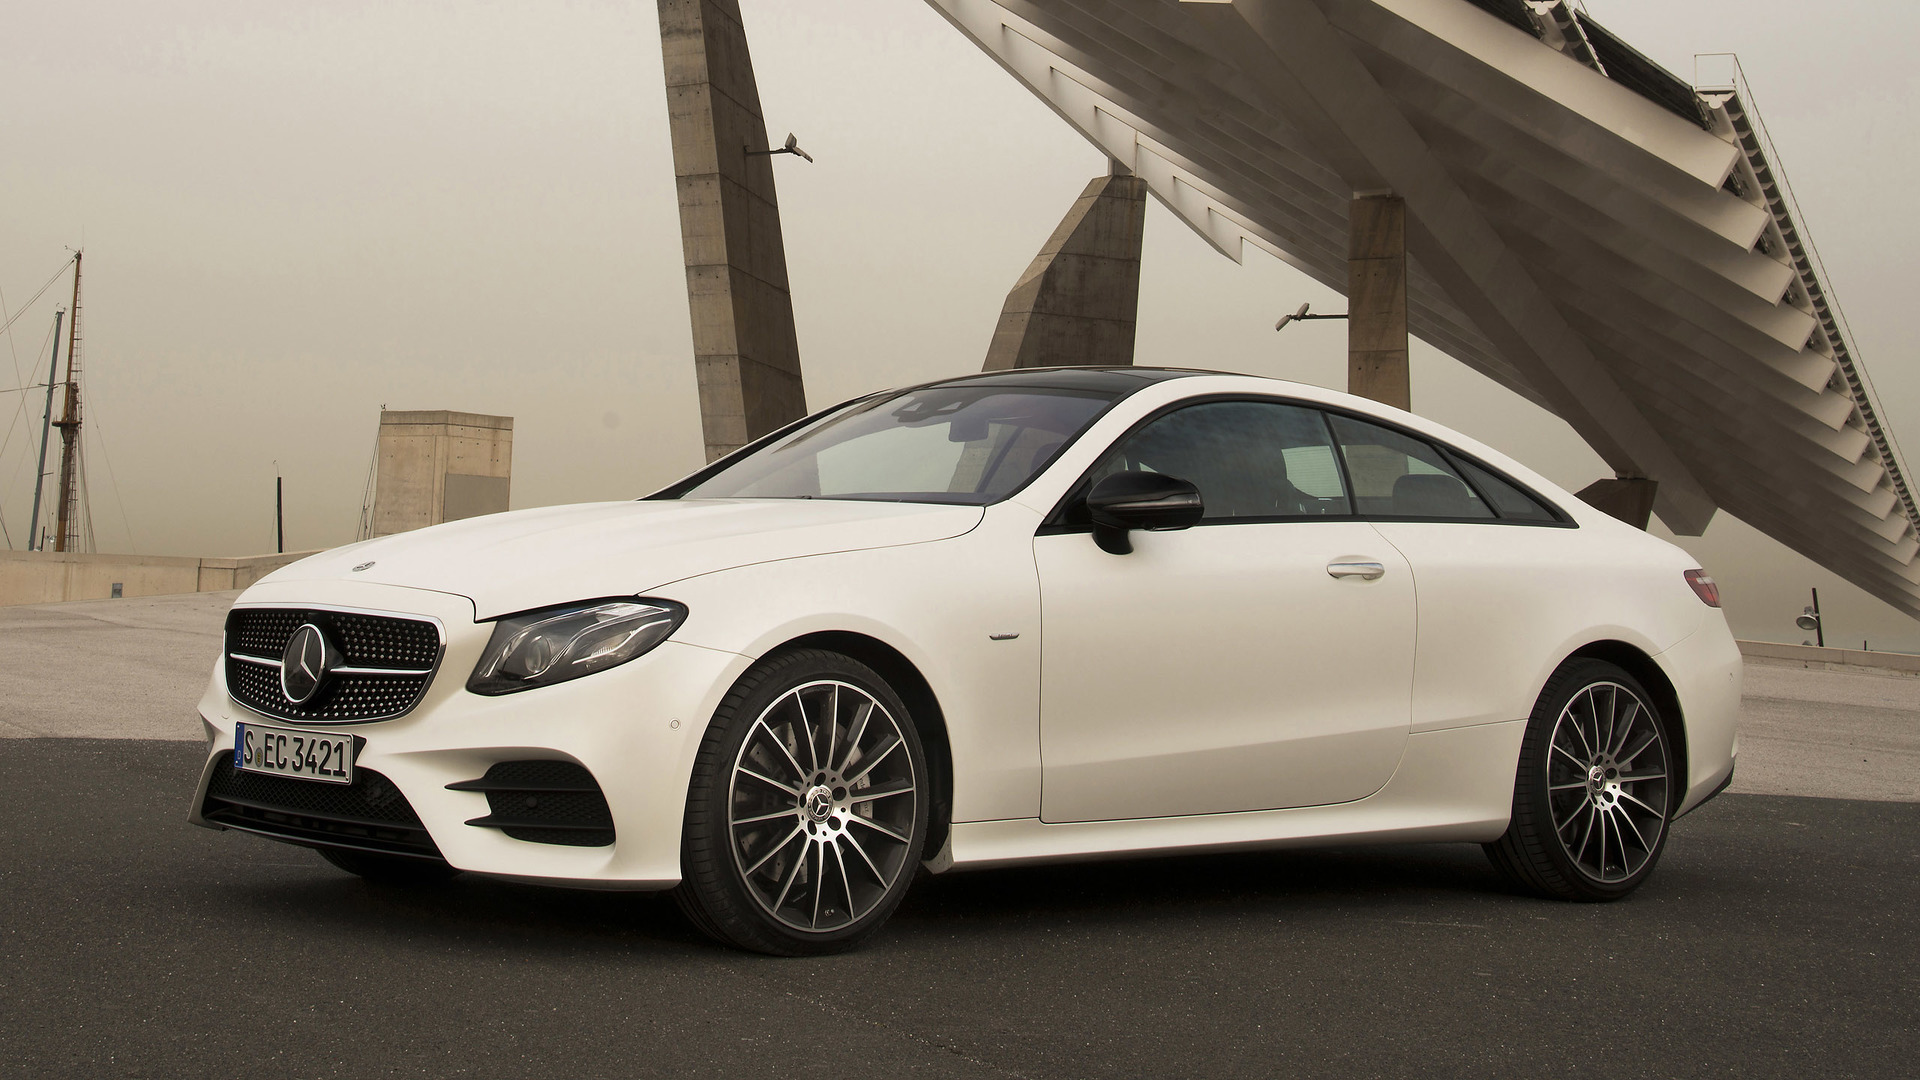 2018 mercedes benz e400 coupe first drive your new retirement cruiser. Black Bedroom Furniture Sets. Home Design Ideas